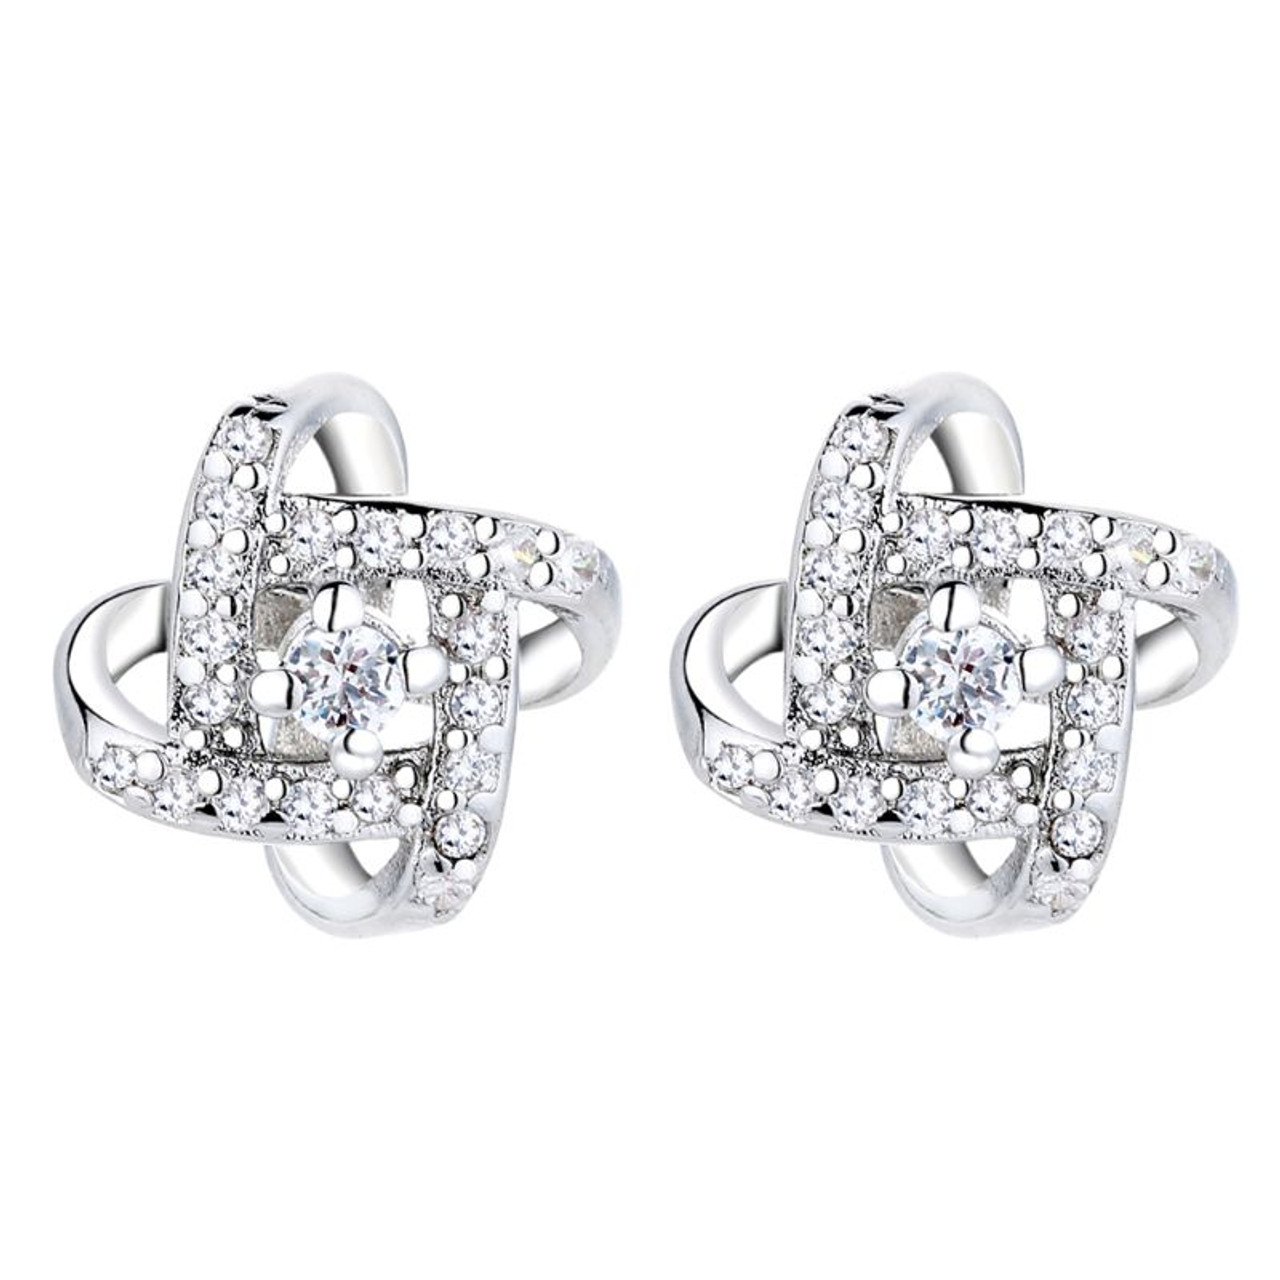 Sterling Silver Love Knot Stud Earrings With Swarovski Crystals